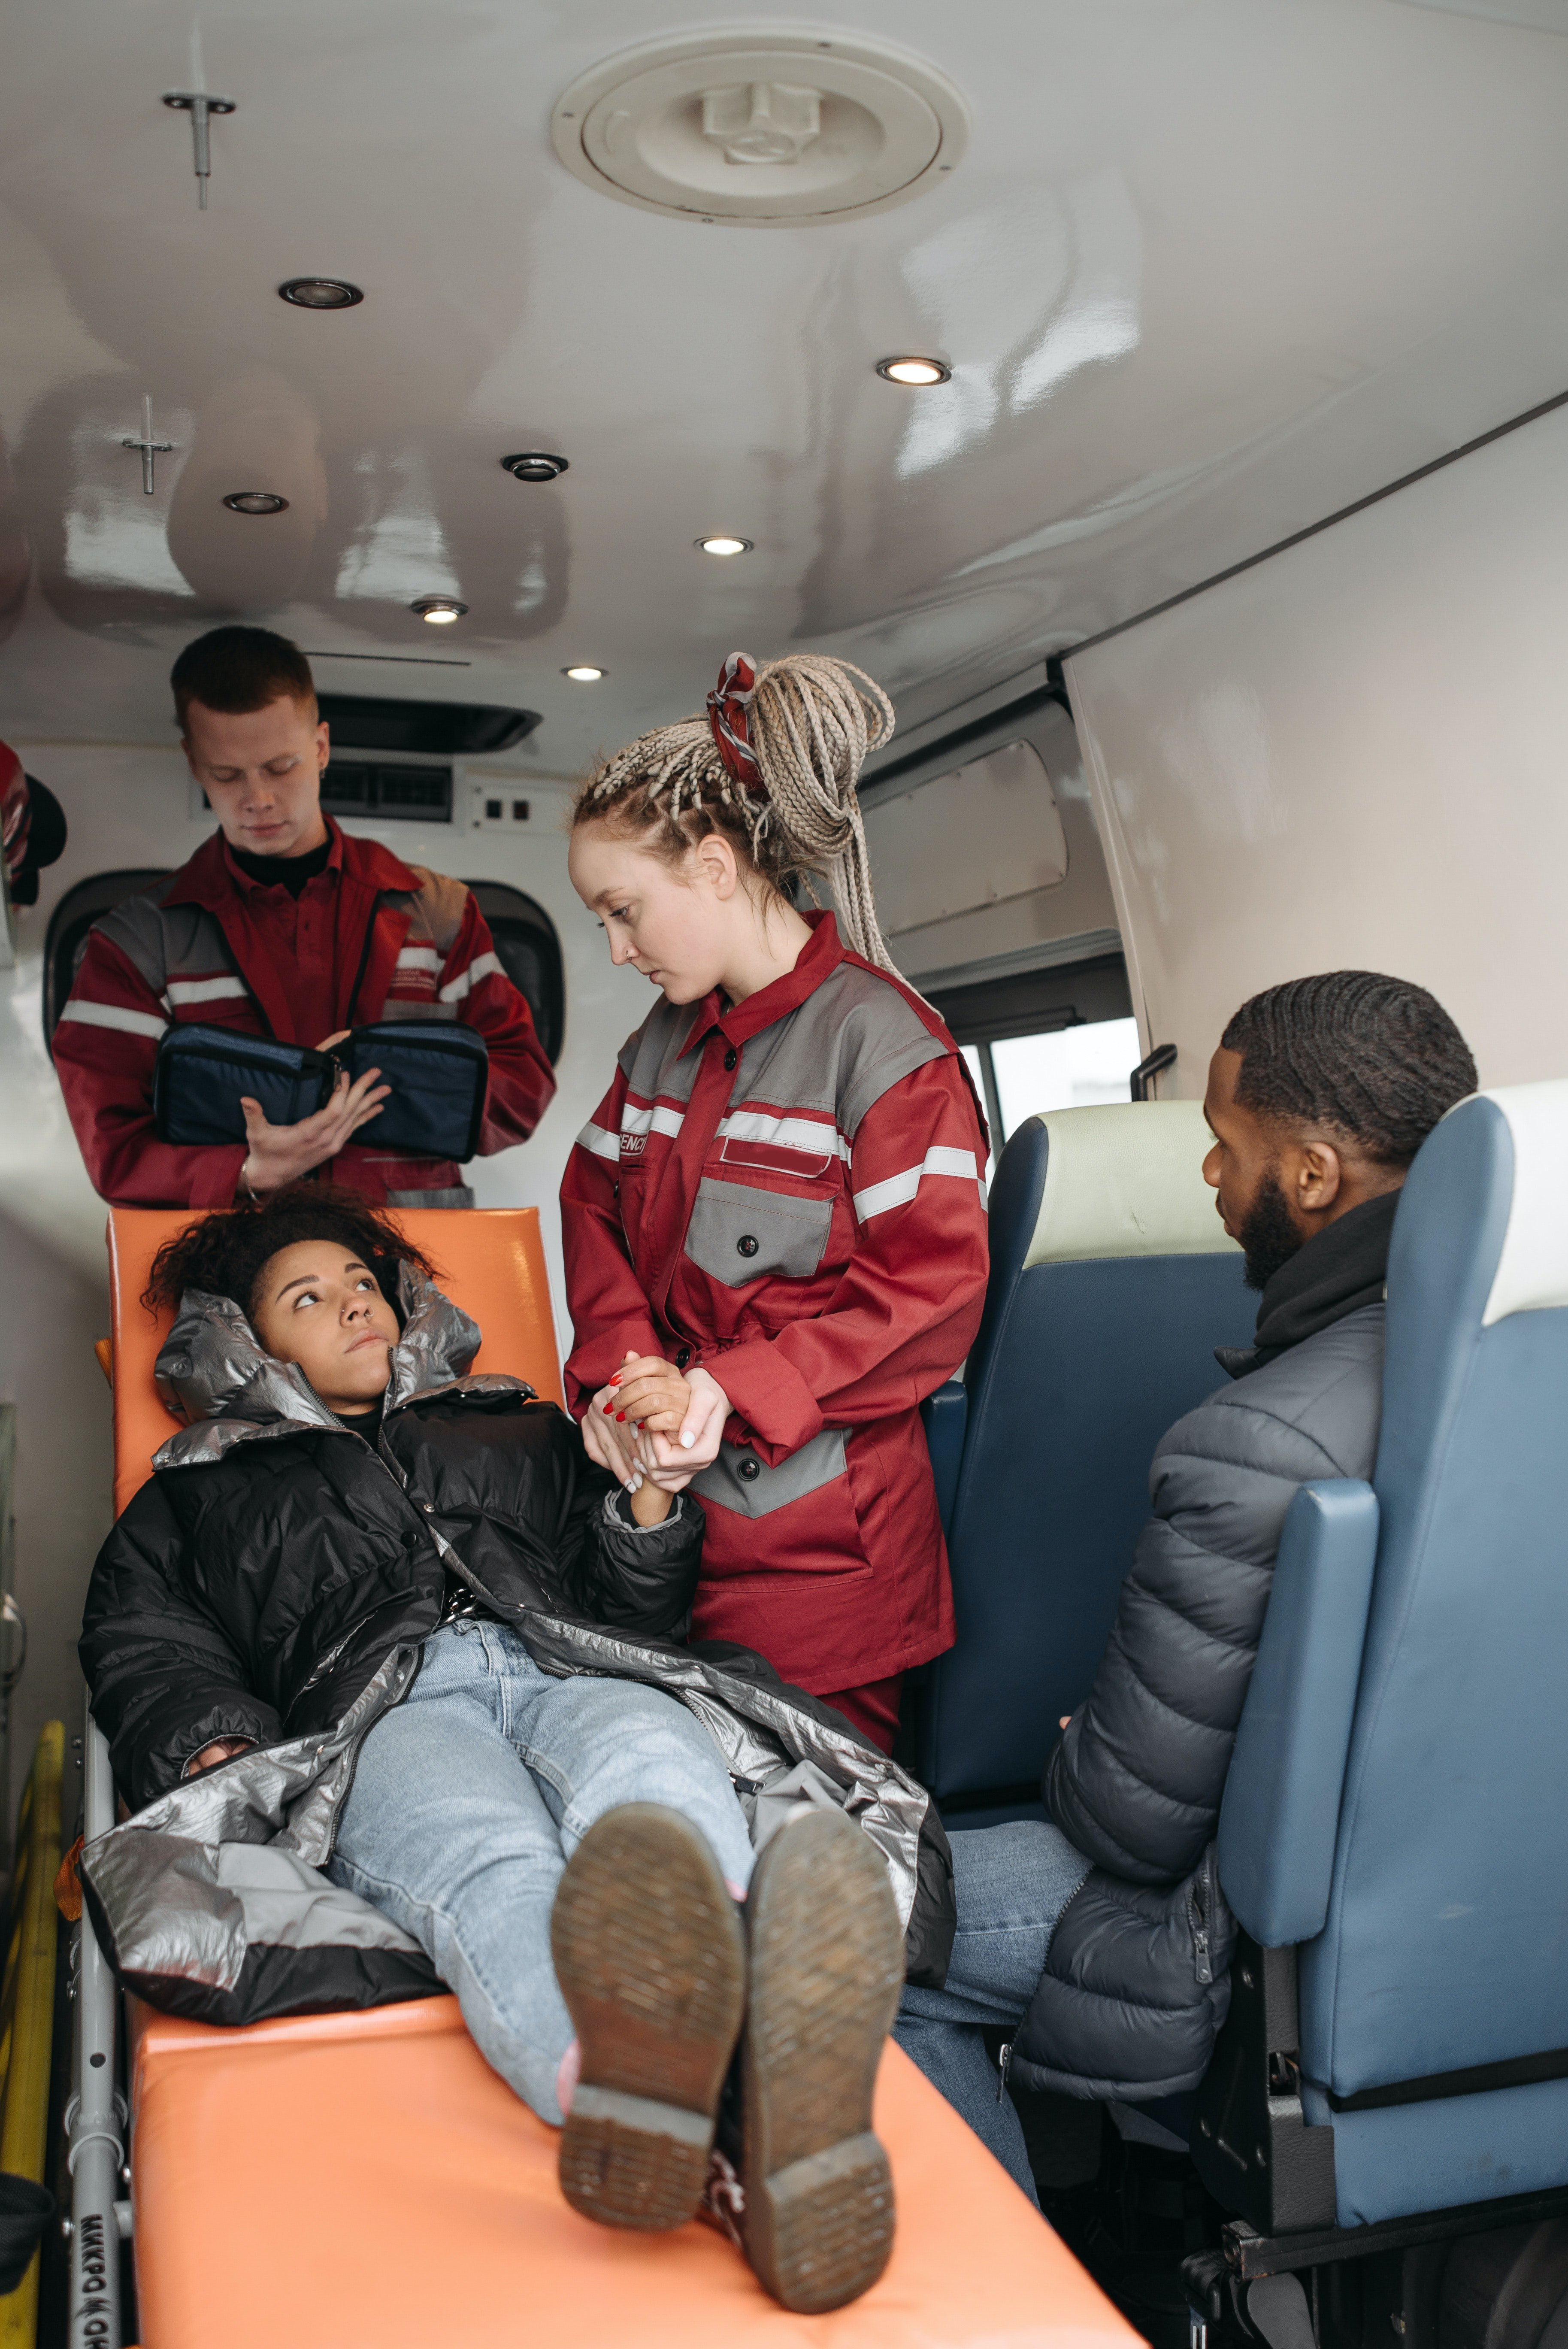 She was transported to the hospital in an ambulance | Source: Pexels